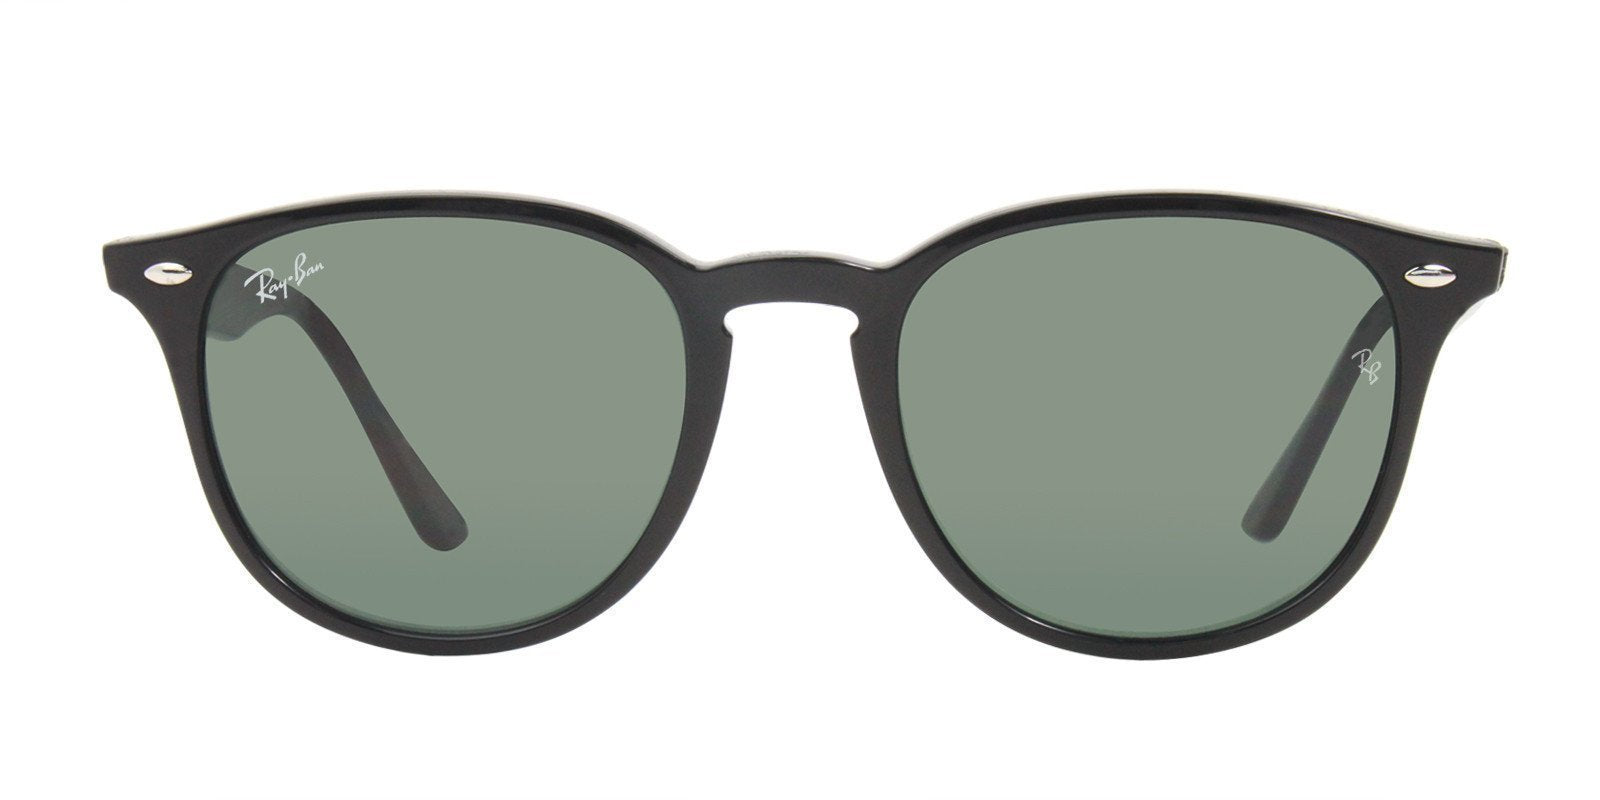 Ray Ban - RB4259 Black Oval Unisex Sunglasses - 51mm-Sunglasses-Designer Eyes